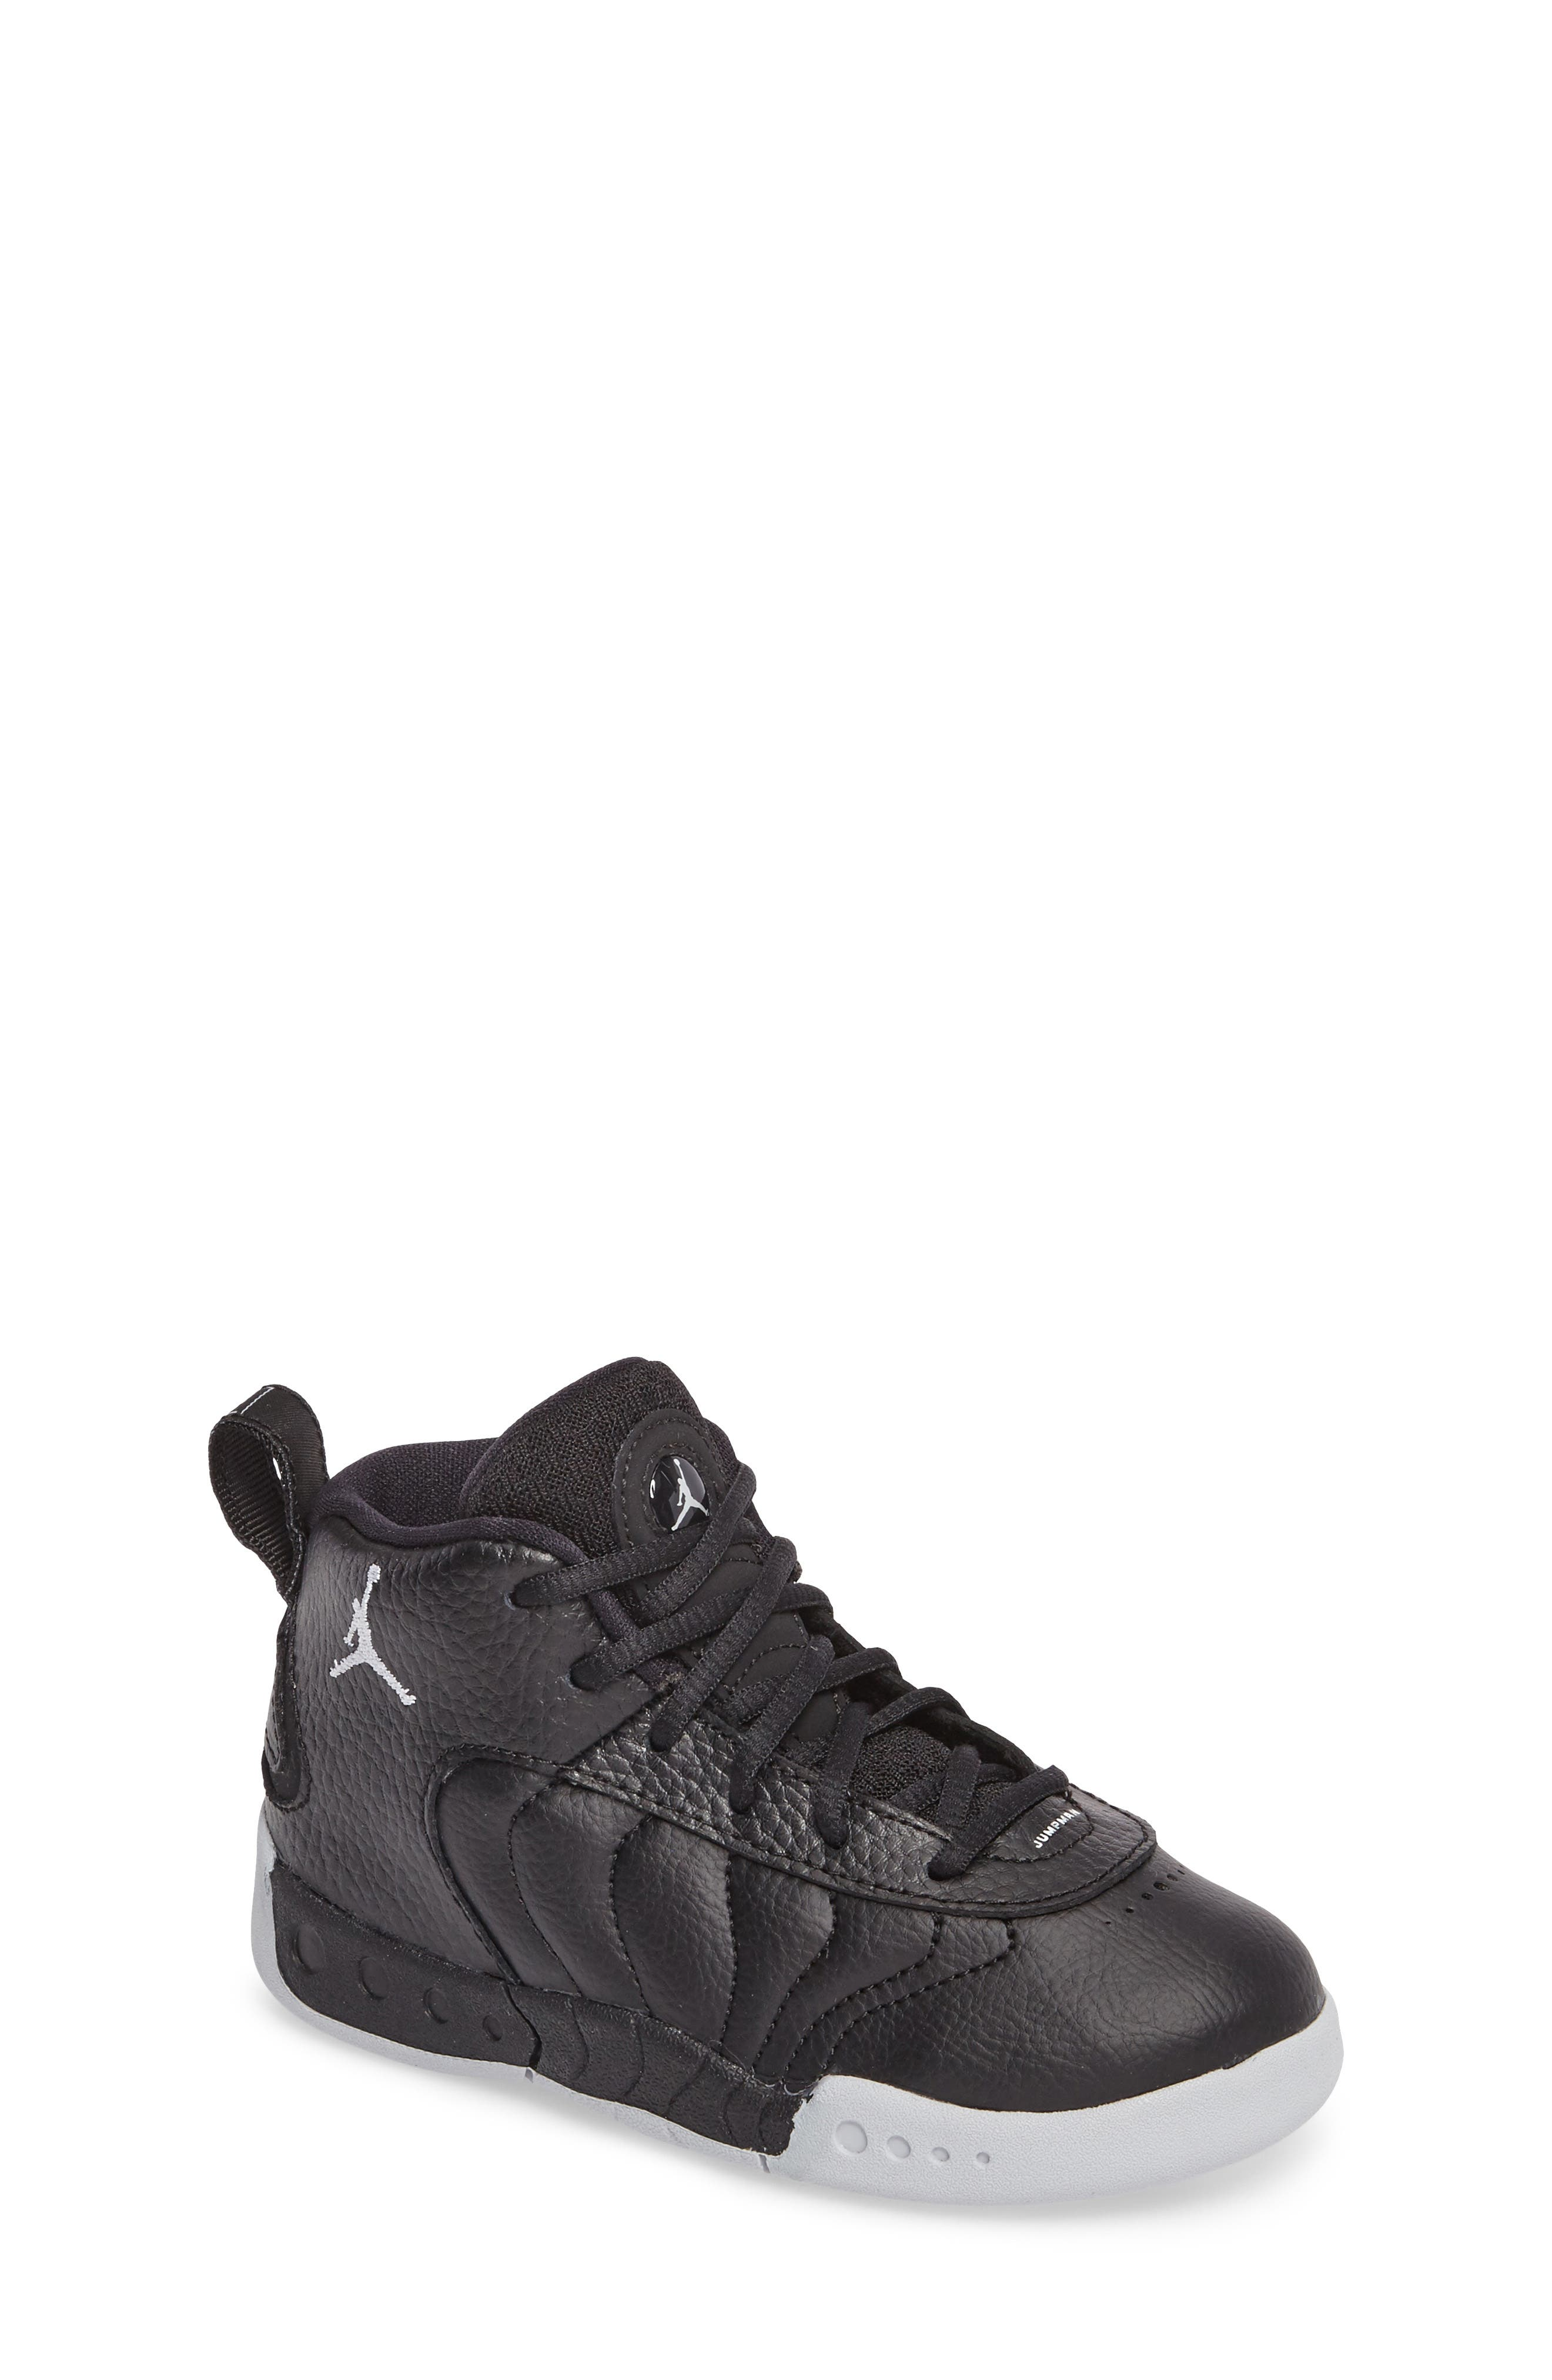 Jordan Jumpman Pro BT Mid Top Sneaker,                             Main thumbnail 1, color,                             012